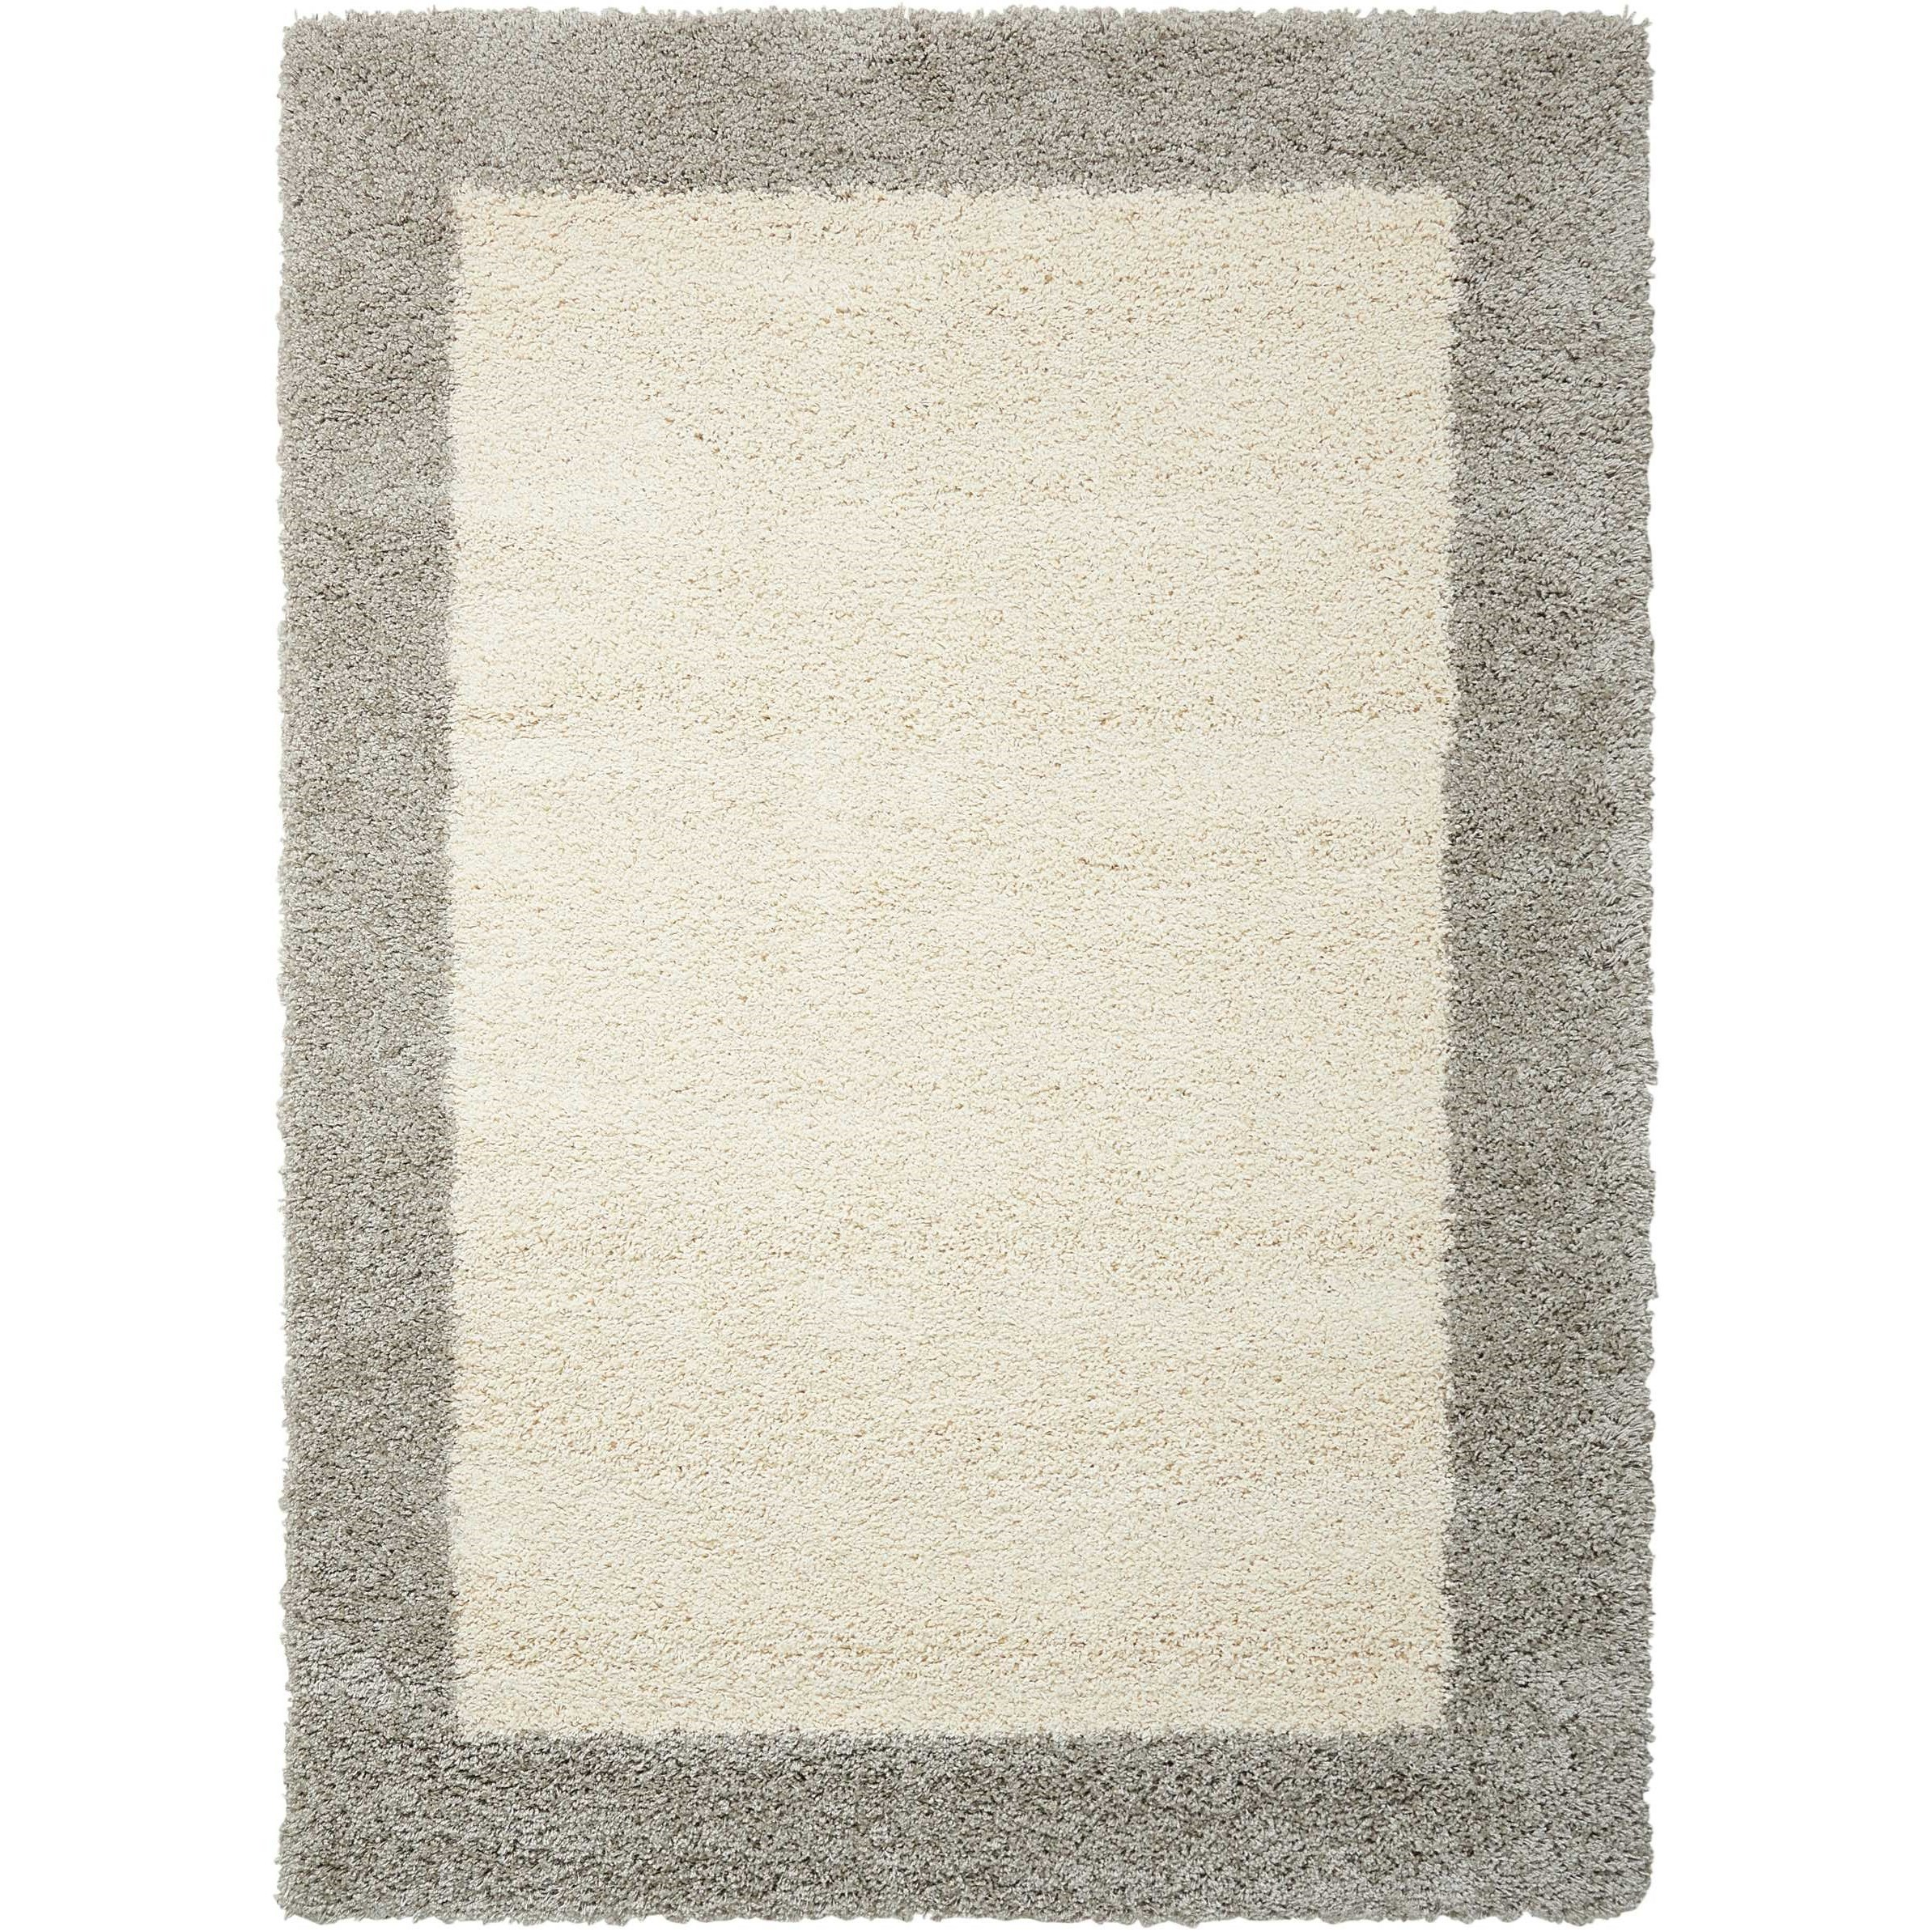 """Amore 3'11"""" x 5'11"""" Ivory/Silver Rectangle Rug by Nourison at Home Collections Furniture"""